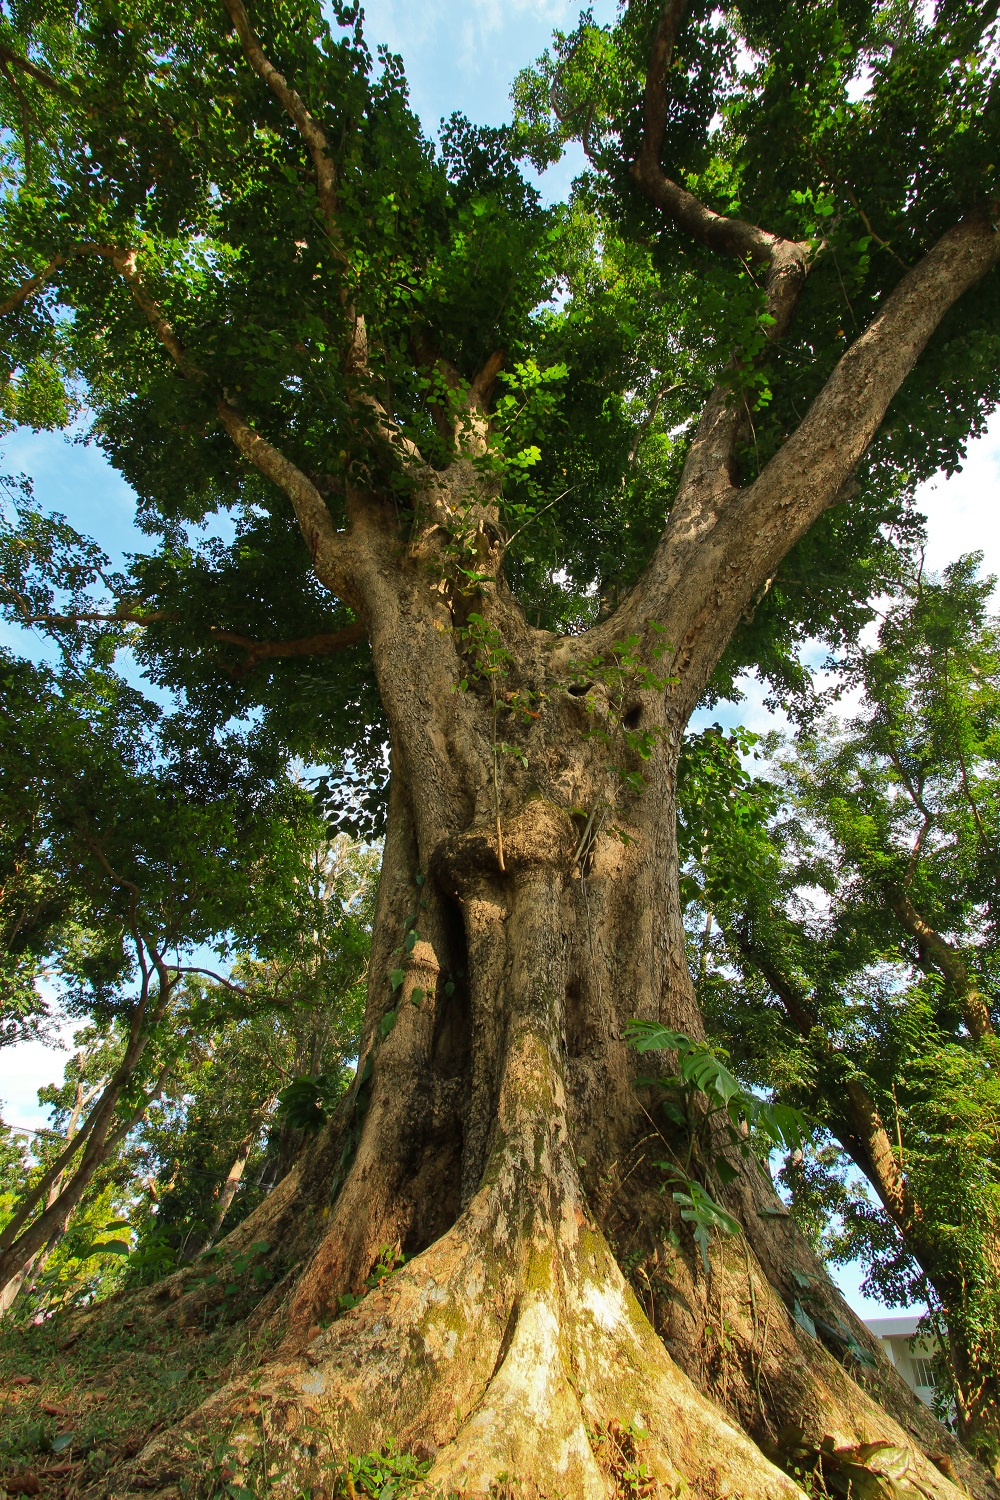 Narra 15 Native Trees That Will Give Your Home a Filipino Touch